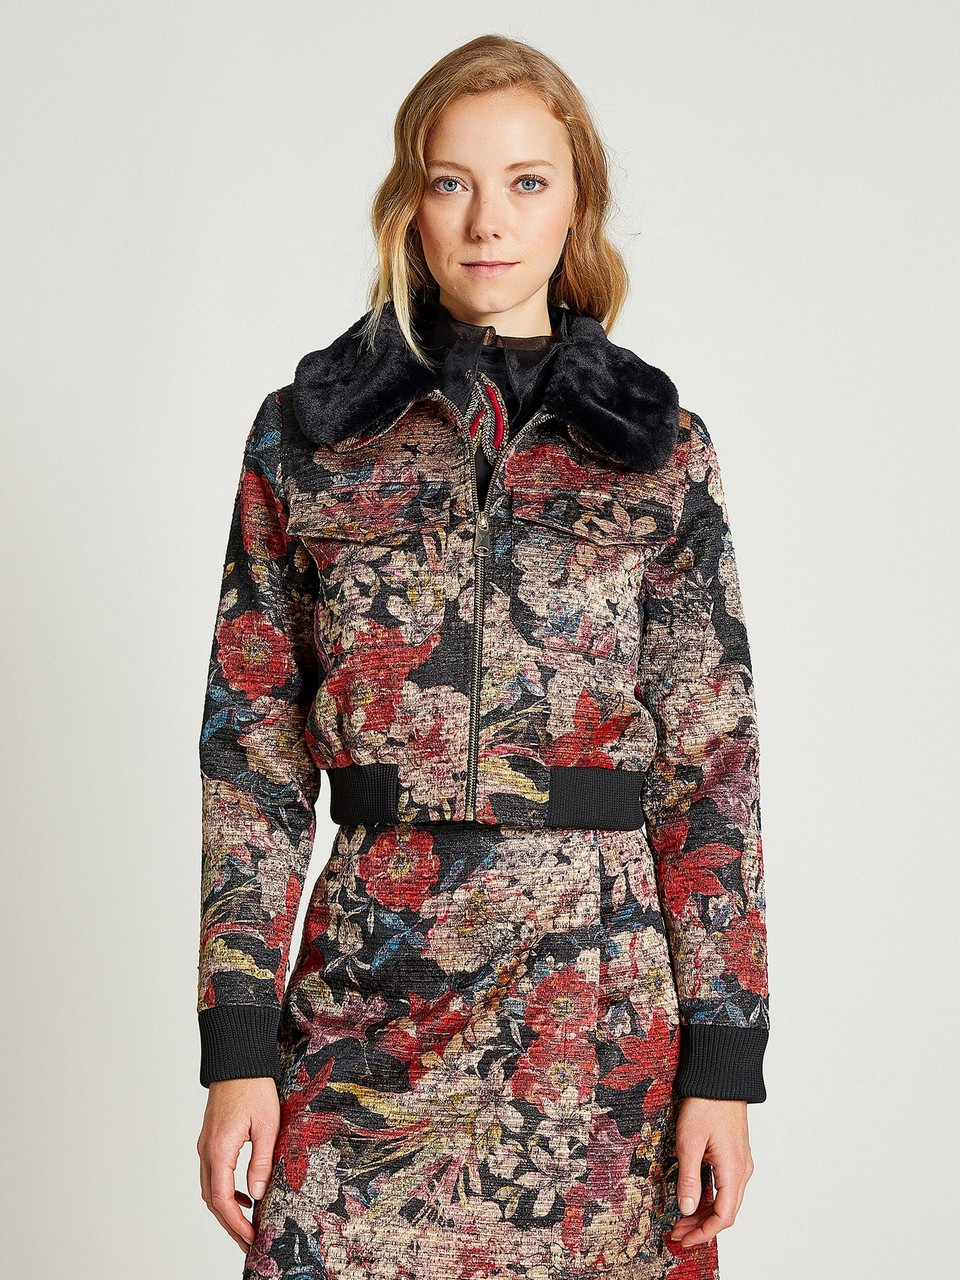 Floral Patterned Woolen Jacket With Fur